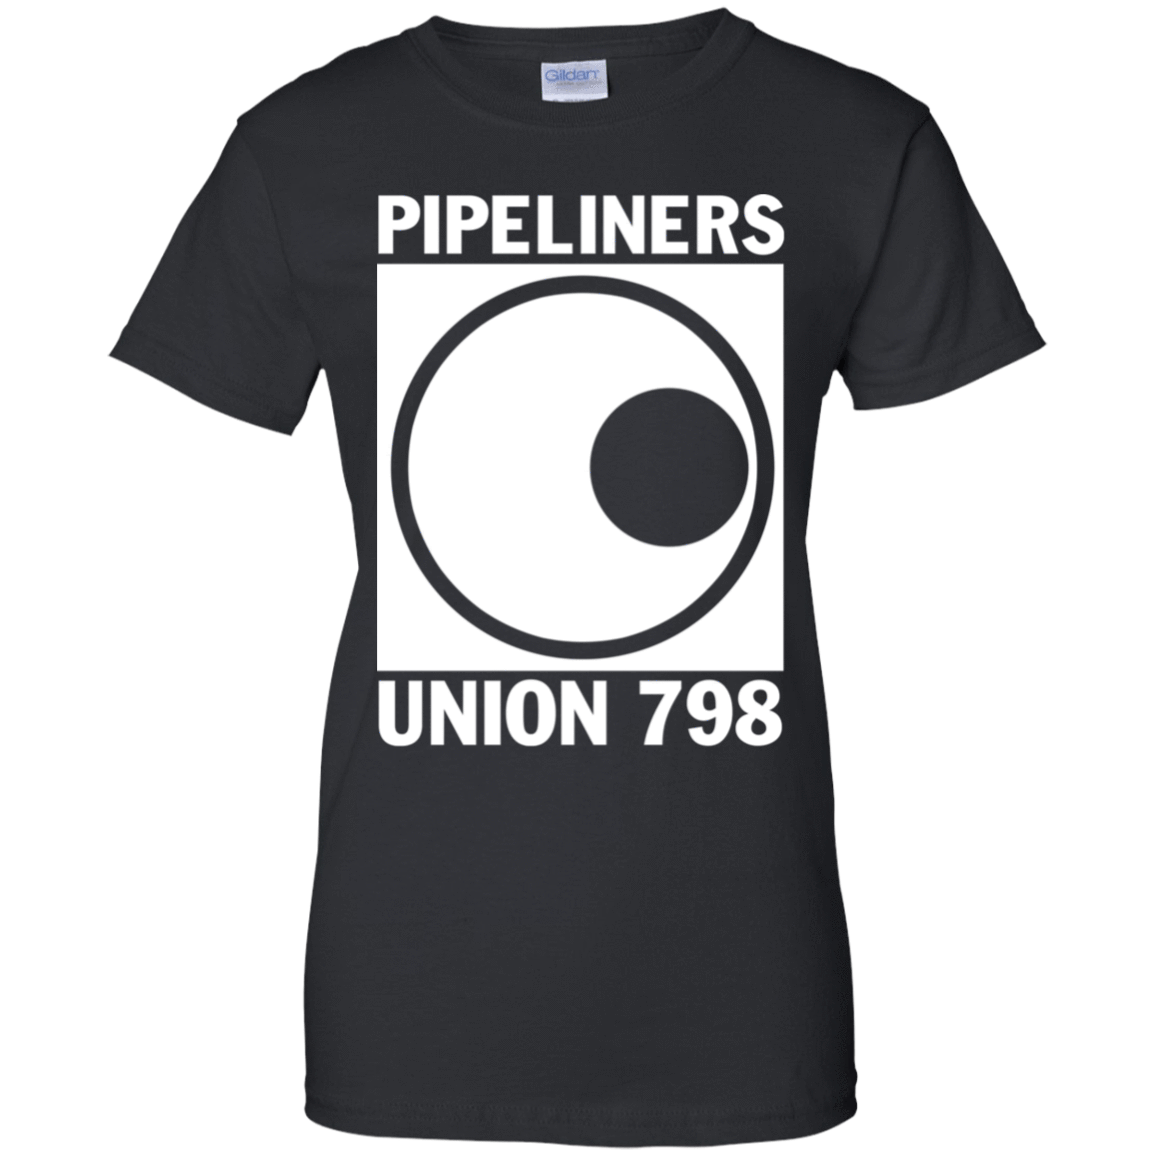 I'm A Union Member Pipeliners Union 798 939-9248-73302072-44695 - Tee Ript